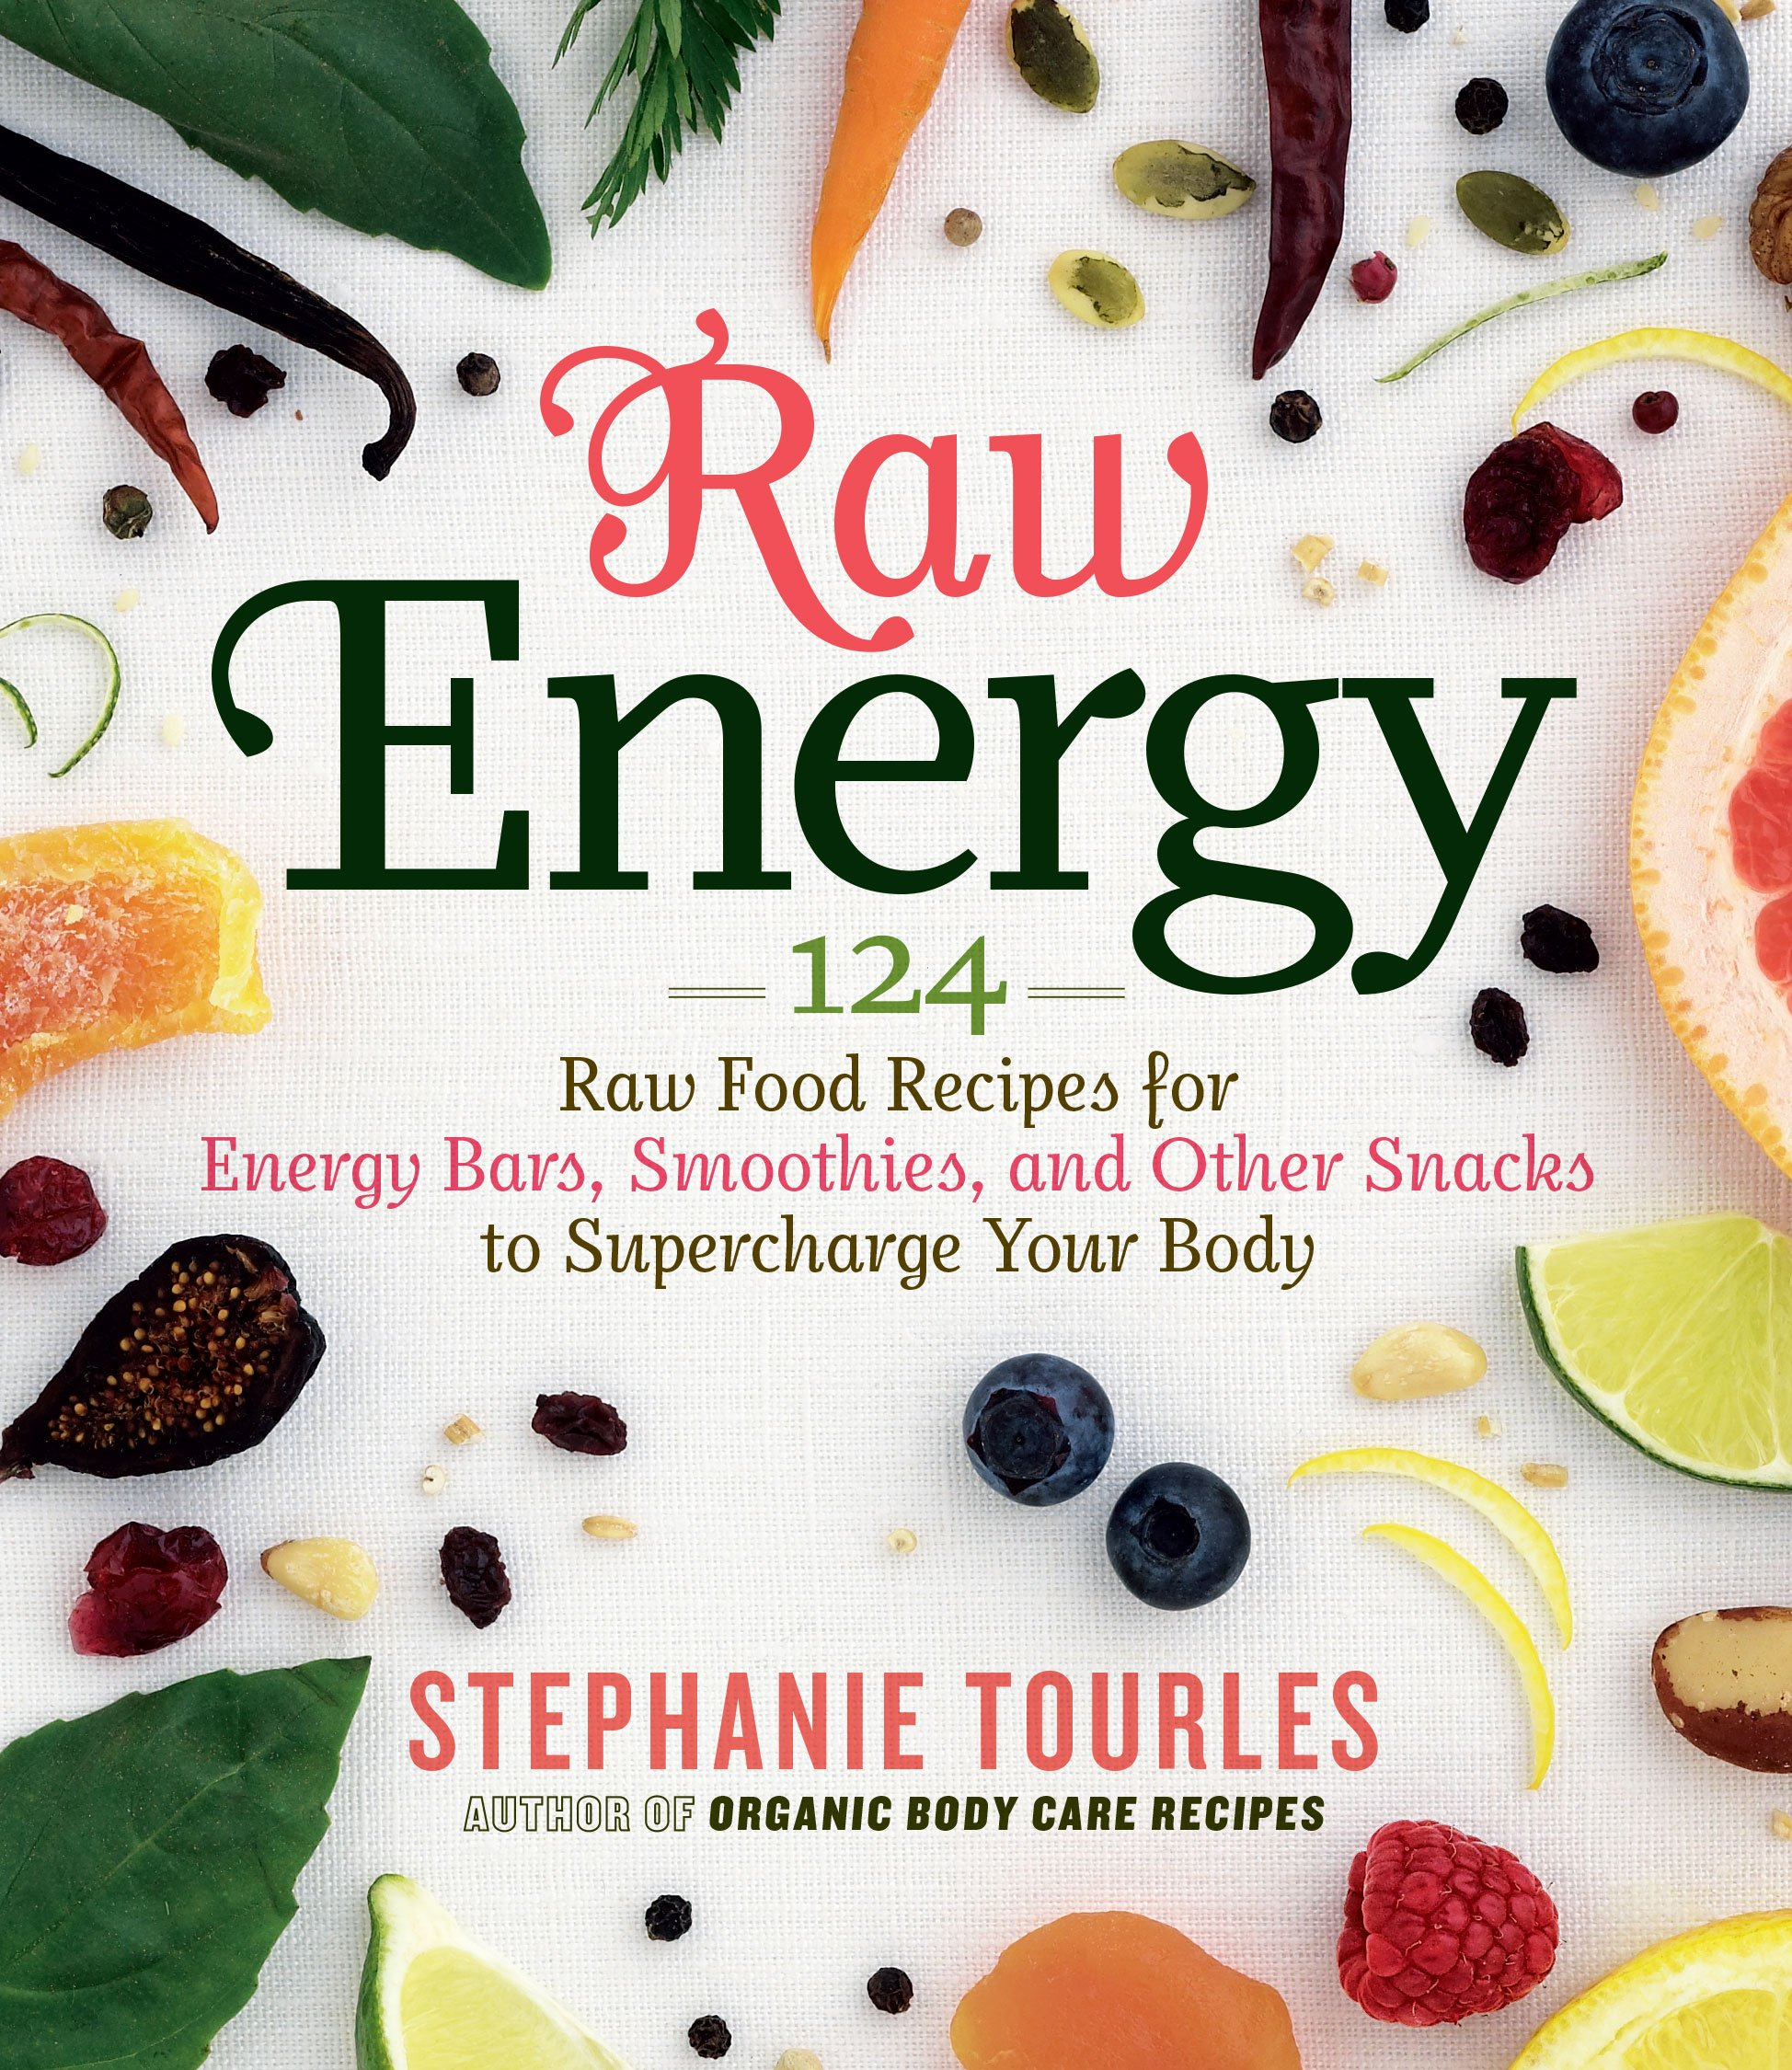 Raw energy 124 raw food recipes for energy bars smoothies and raw energy 124 raw food recipes for energy bars smoothies and other snacks to supercharge your body stephanie l tourles 9781603424677 amazon forumfinder Images